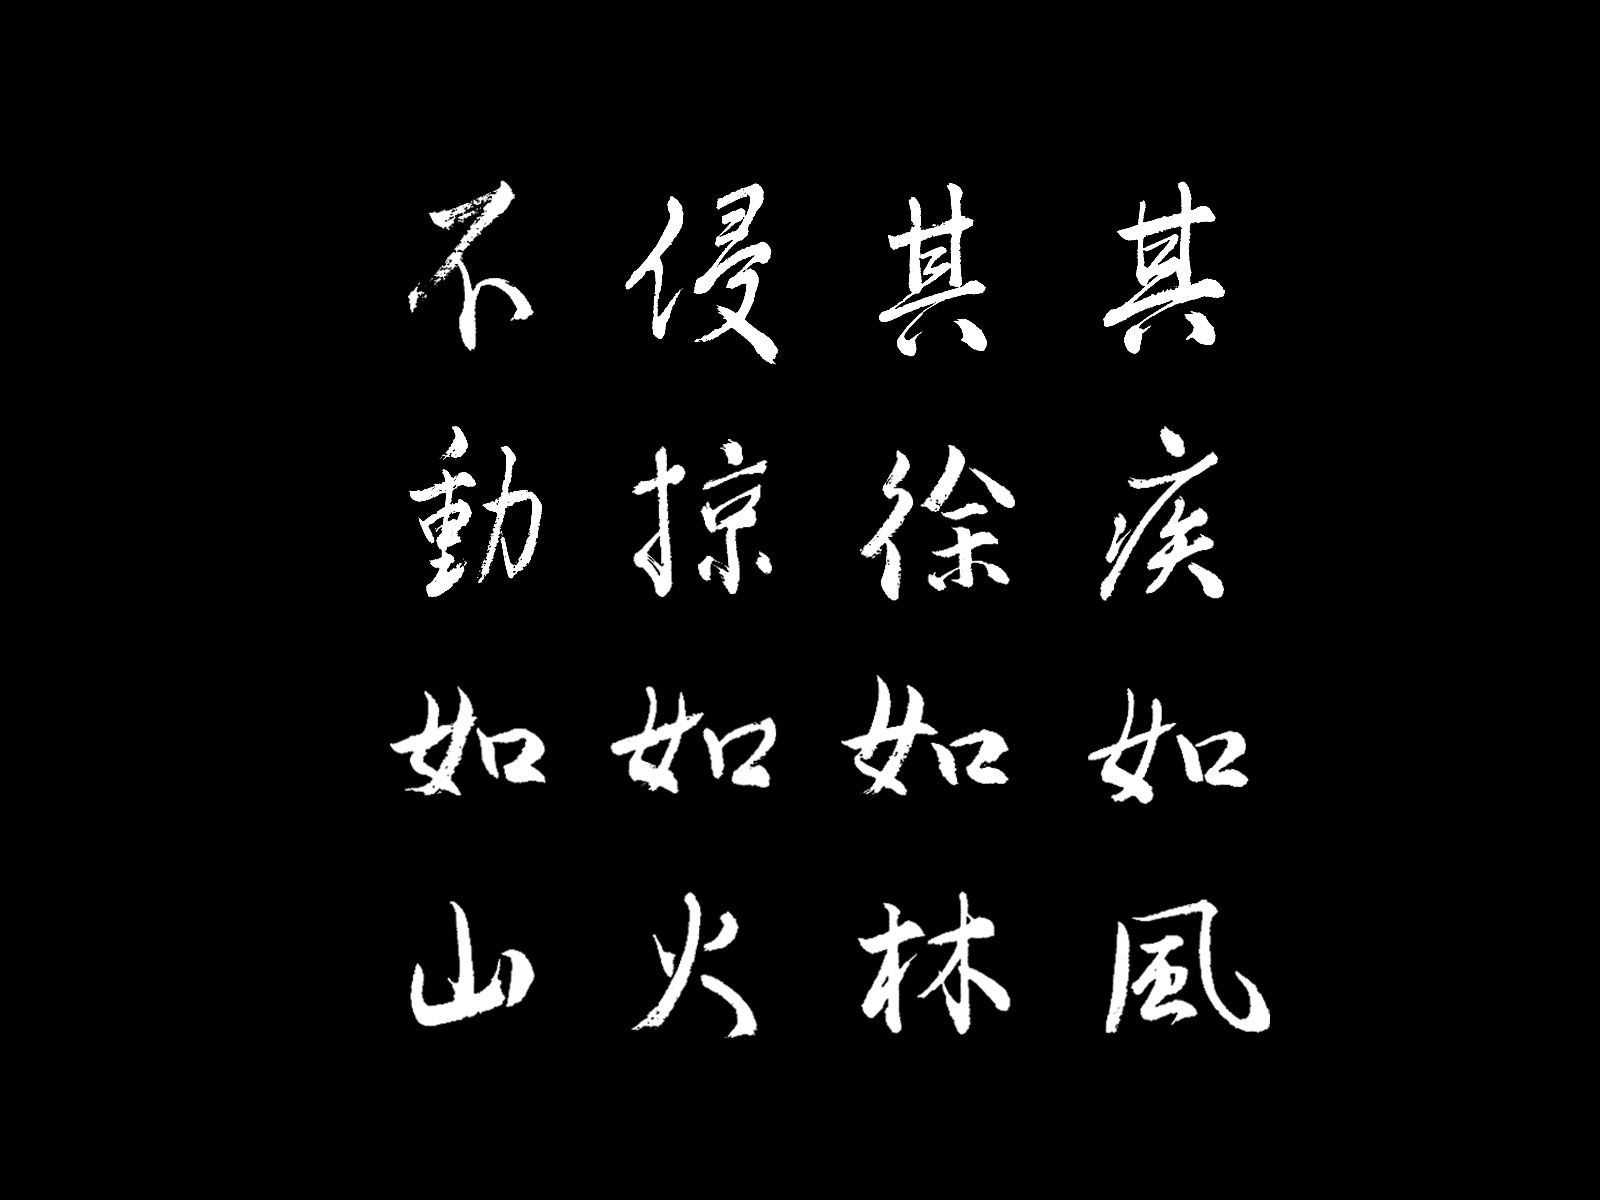 """Japanese calligraphy (shodo): fuurinkazan (as fast as the wind, as quiet as the forest, as daring as fire, and immovable as the mountain). Fūrinkazan (風林火山), literally """"Wind, Forest, Fire and Mountain"""", was the battle standard used by the Sengoku period daimyo Takeda Shingen, quoting chapter 7 of Sun Tzu's The Art of War: """"Move as swift as a wind, stay as silent as forest, attack as fierce as fire, undefeatable defense like a mountain."""""""